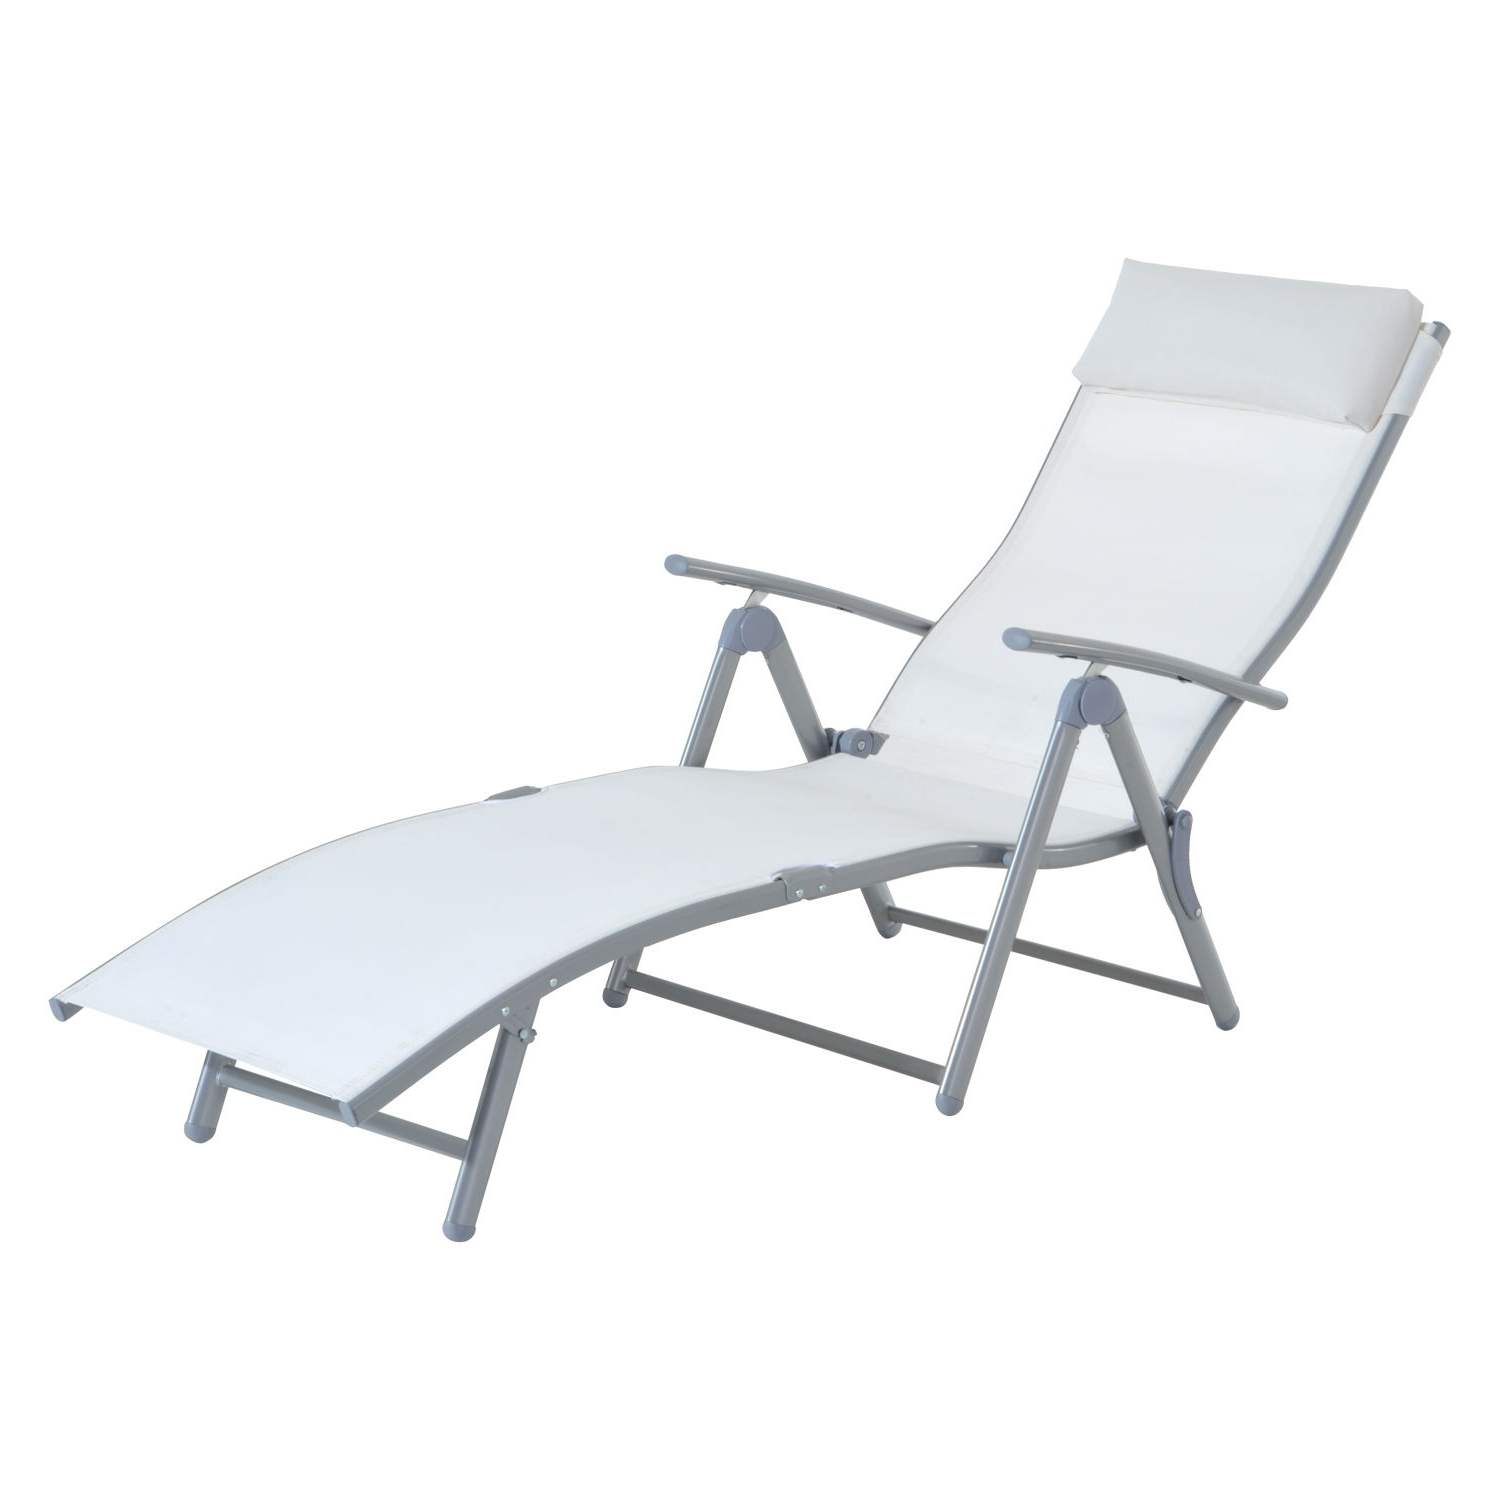 Popular Outdoor : Lowes Chaise Lounge Indoor Outdoor Chaise Lounge Chairs Inside Chaise Lounge Strap Chairs (View 8 of 15)